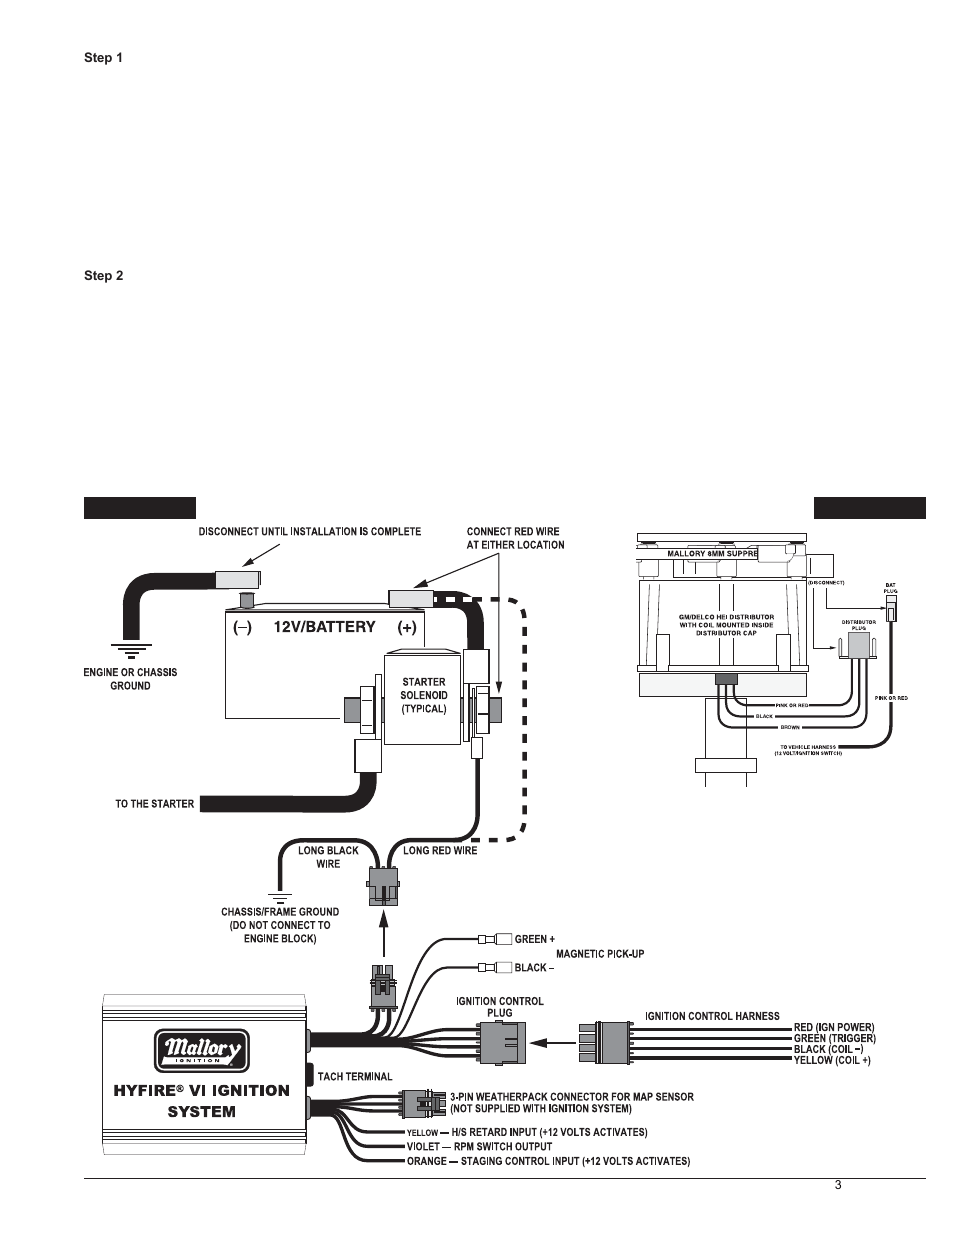 hight resolution of basic wiring procedure mallory ignition mallory hyfire vi series warn winch wiring diagram basic wiring procedure